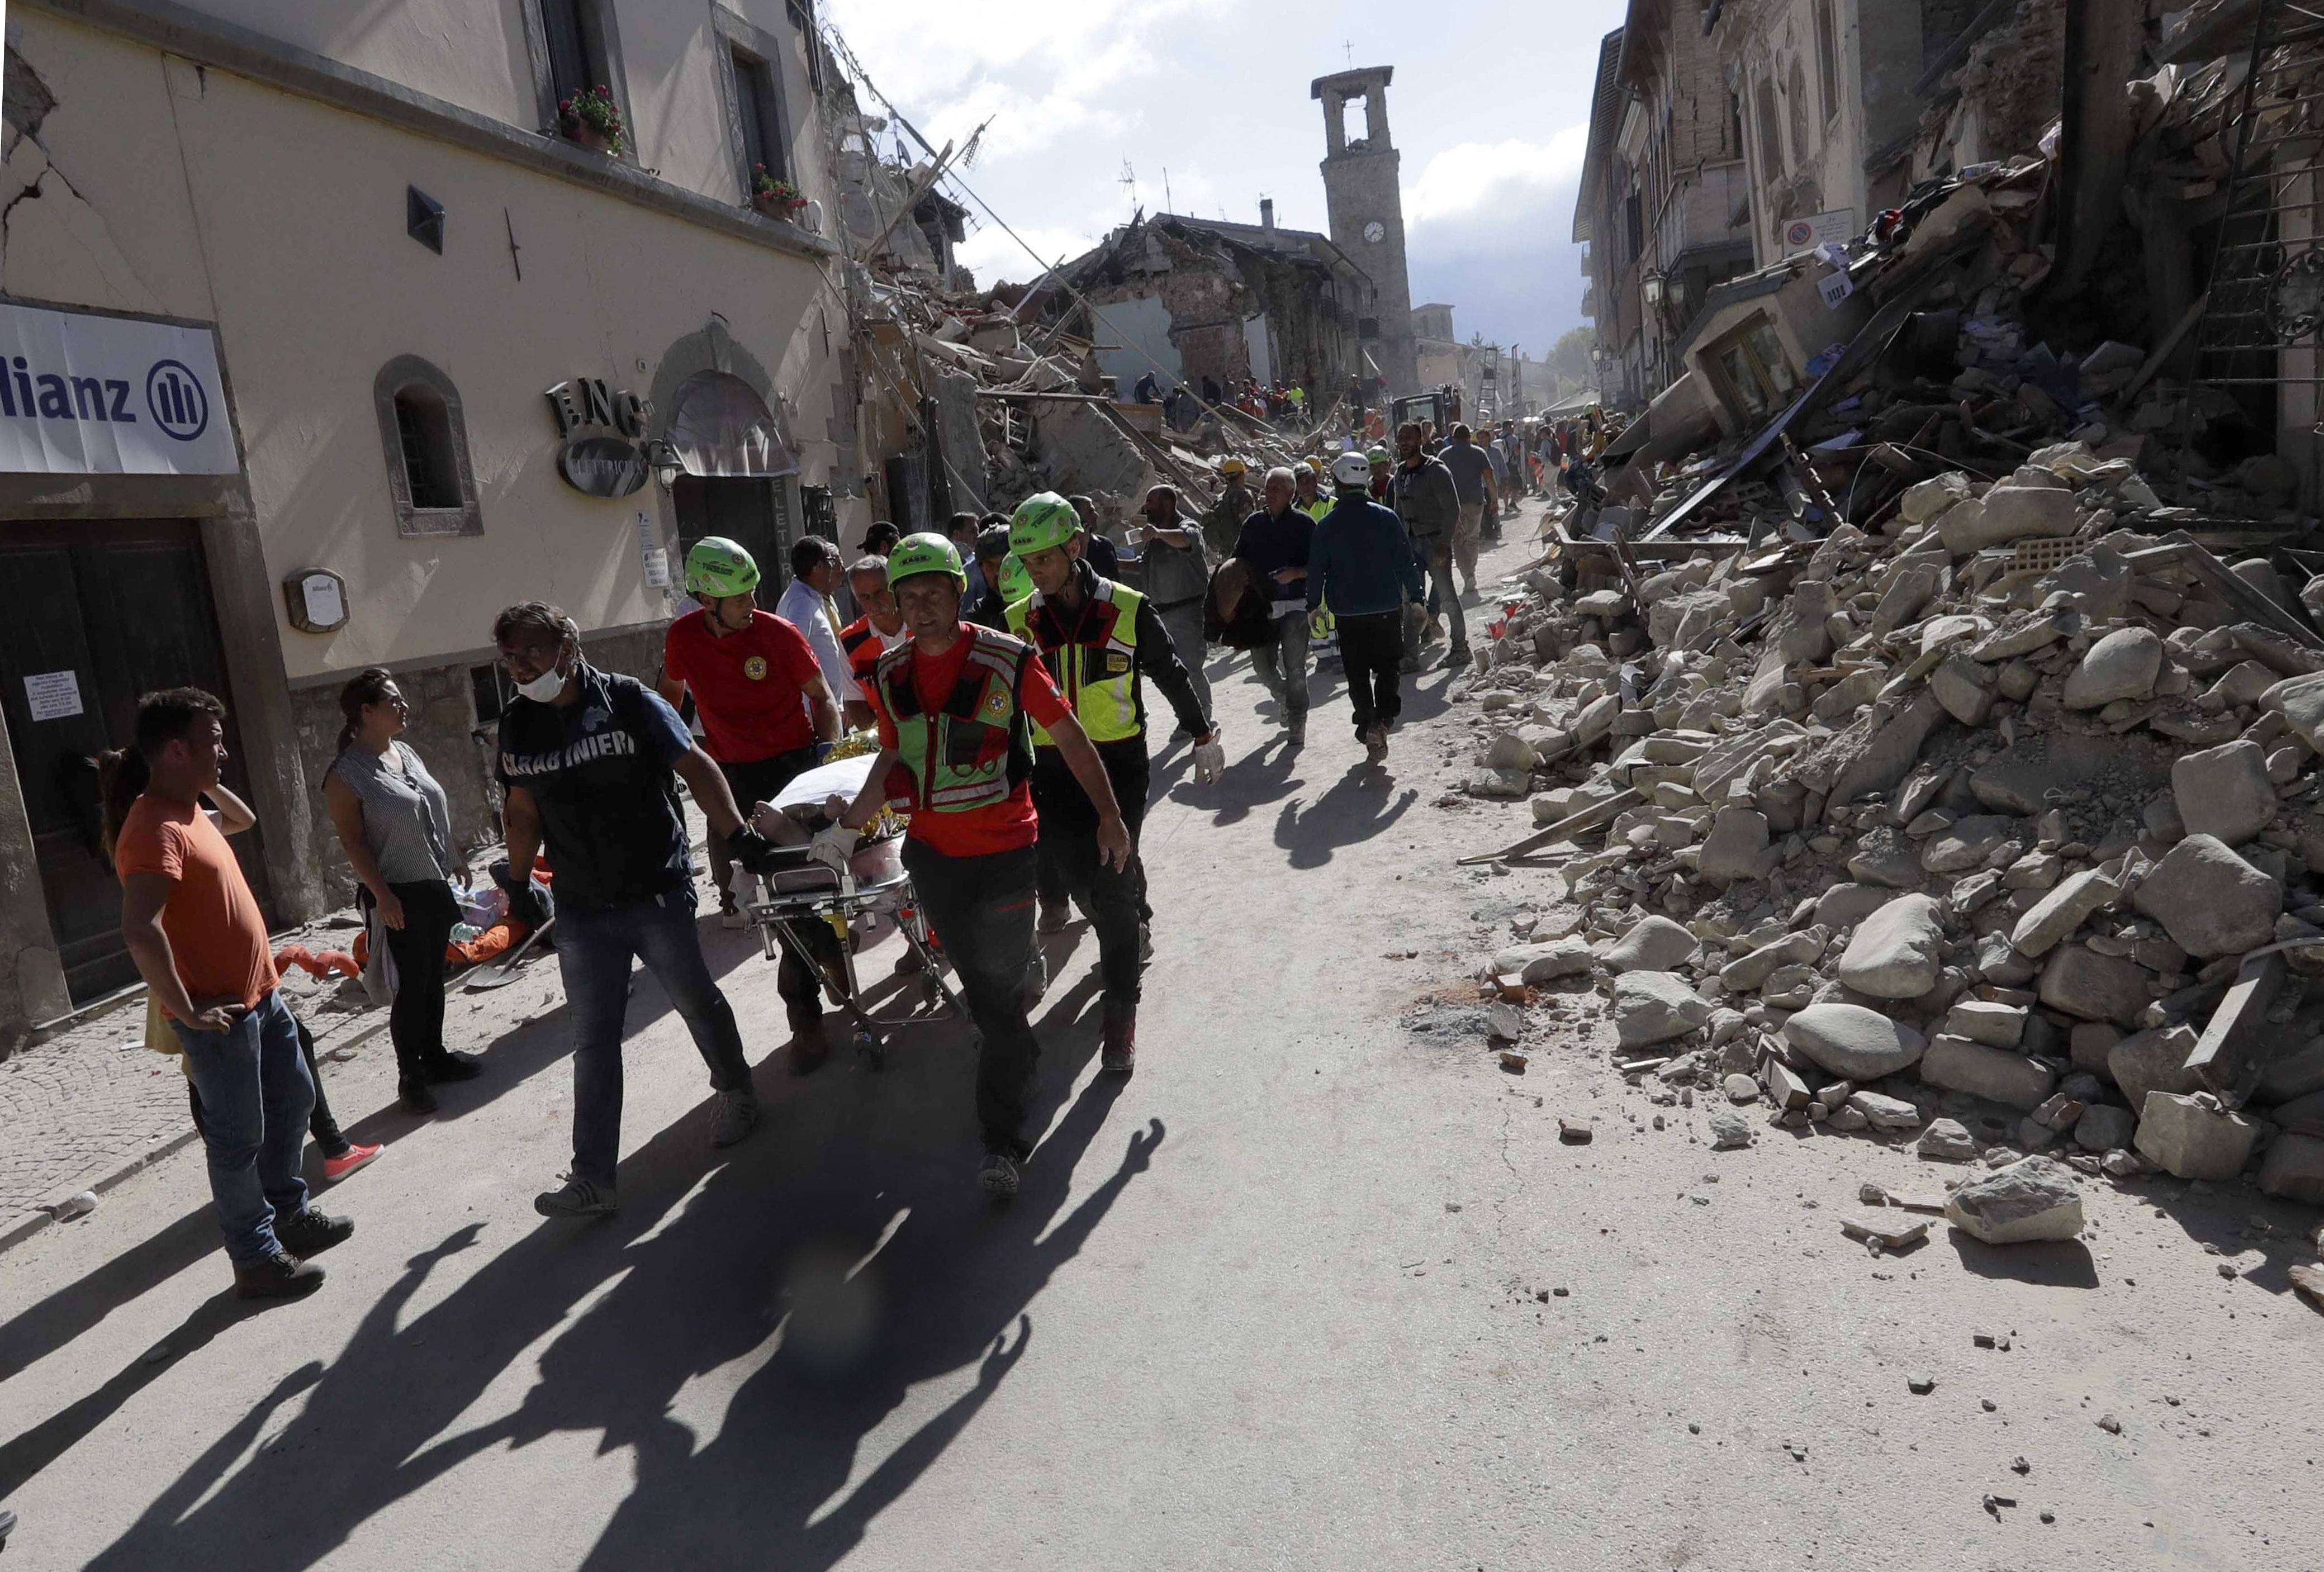 The body of a victim is pulled out of the rubble following an earthquake in Amatrice Italy, Wednesday, Aug. 24, 2016. The magnitude 6 quake struck at 3:36 a.m. (0136 GMT) and was felt across a broad swath of central Italy, including Rome where residents of the capital felt a long swaying followed by aftershocks. . (AP Photo/Alessandra Tarantino)